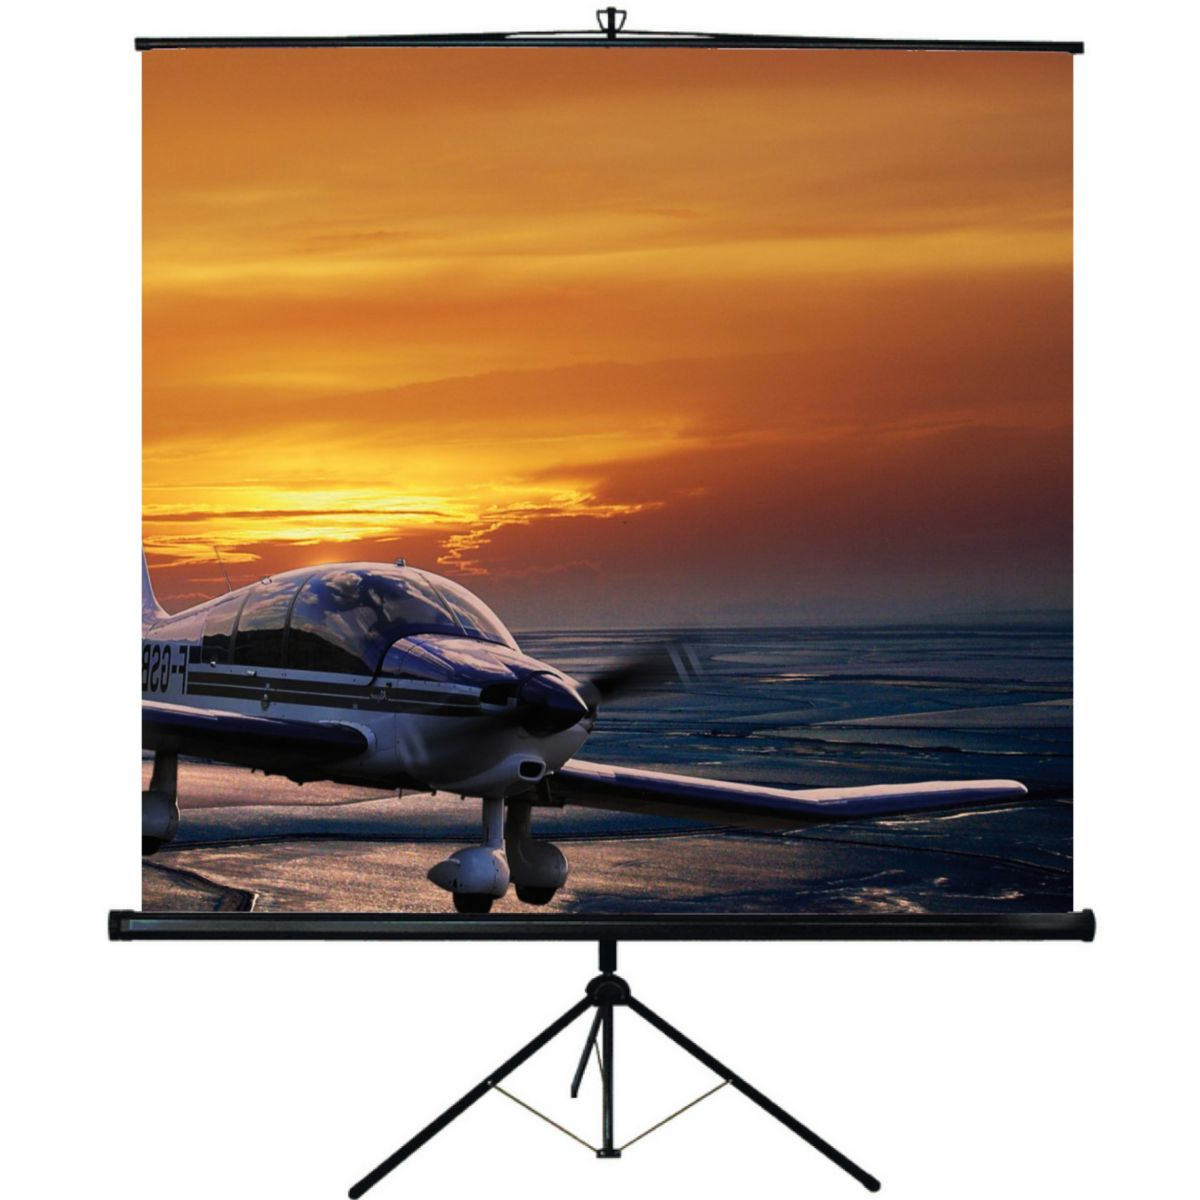 Ecran de projection oray screen trepied 150*150 manuel - 20% de remise imm�diate avec le code : deal20 (photo)